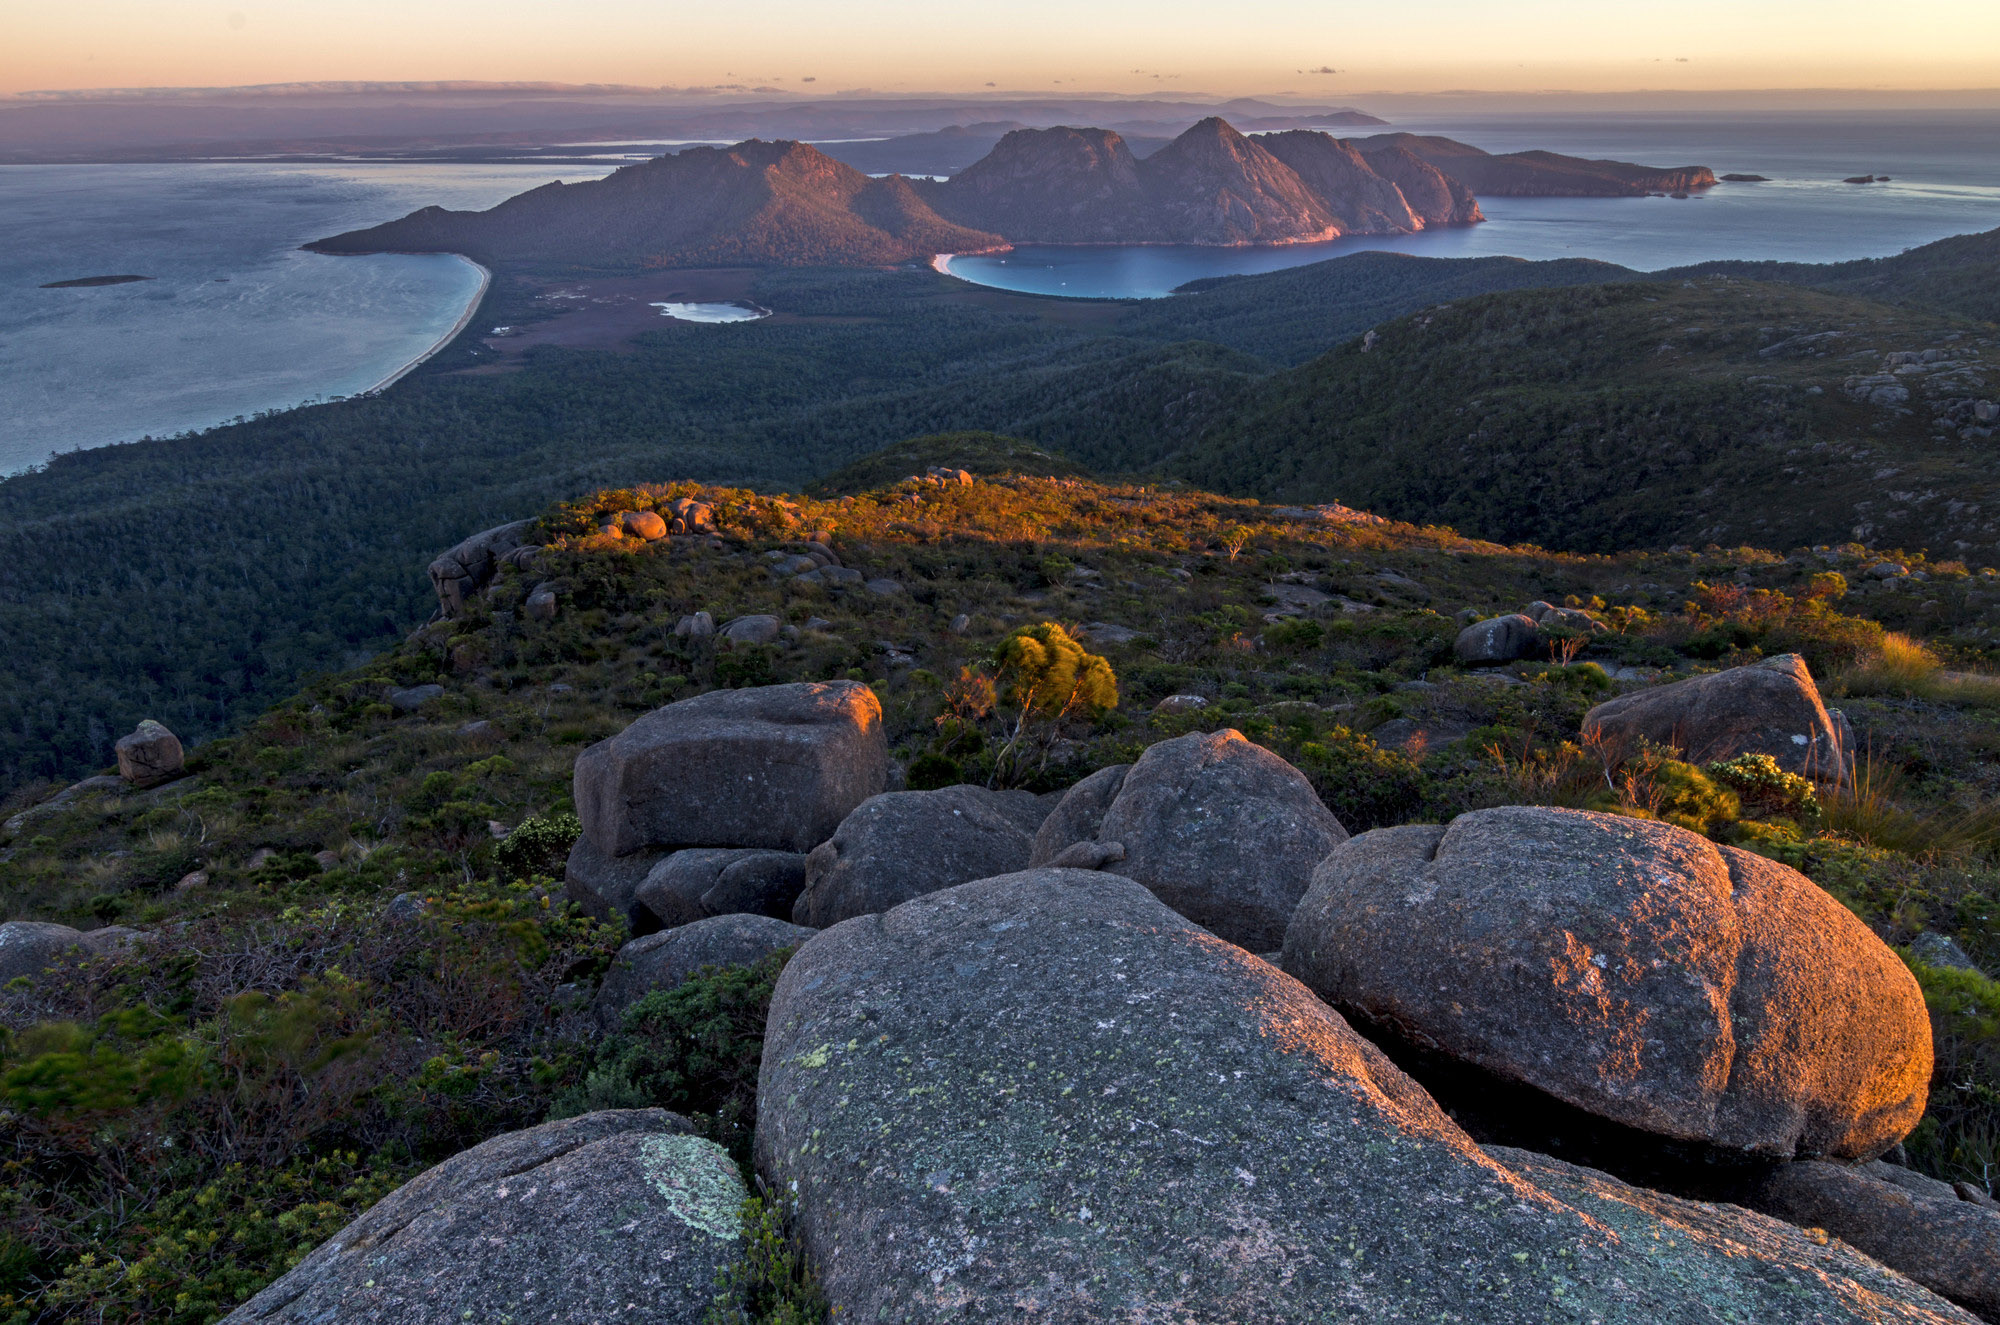 The view over Wineglass Bay from Mount Freycinet, Freycinet National Park